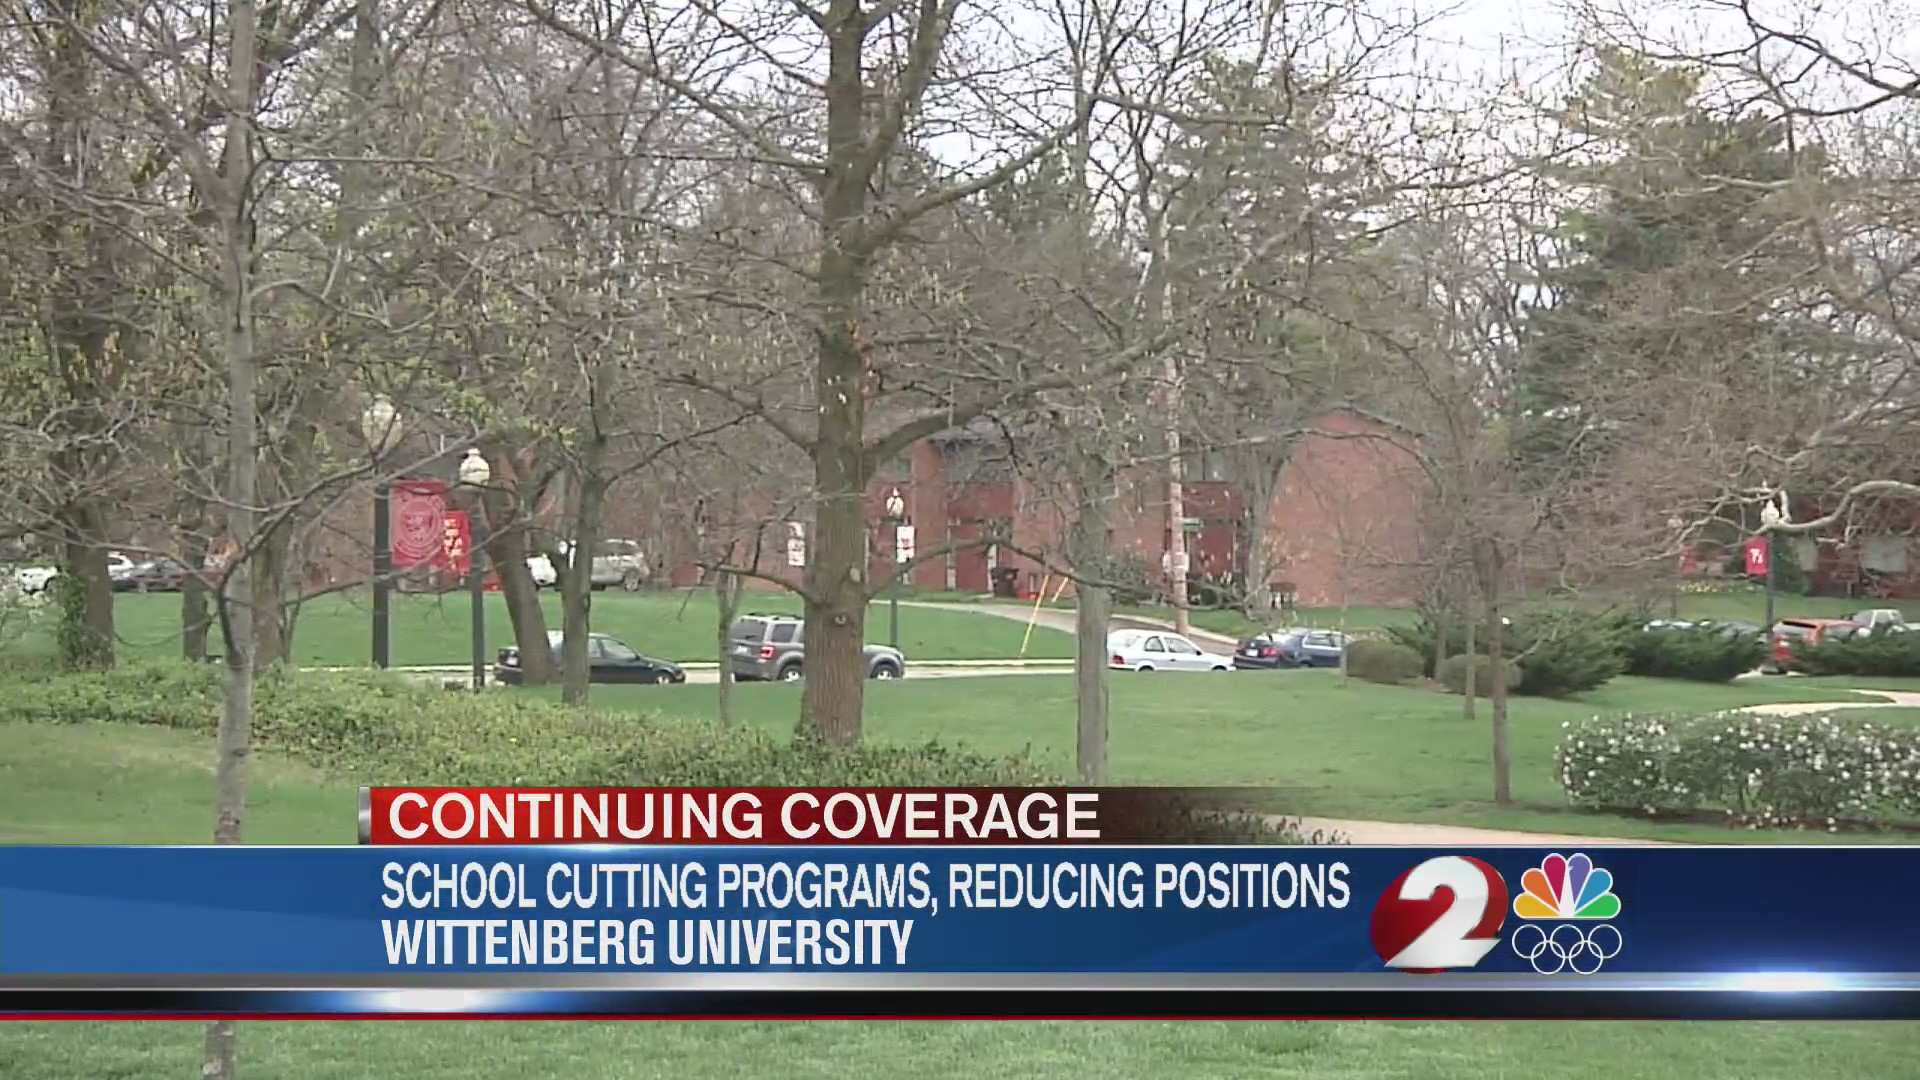 Wittenberg University cutting programs, reducing positions